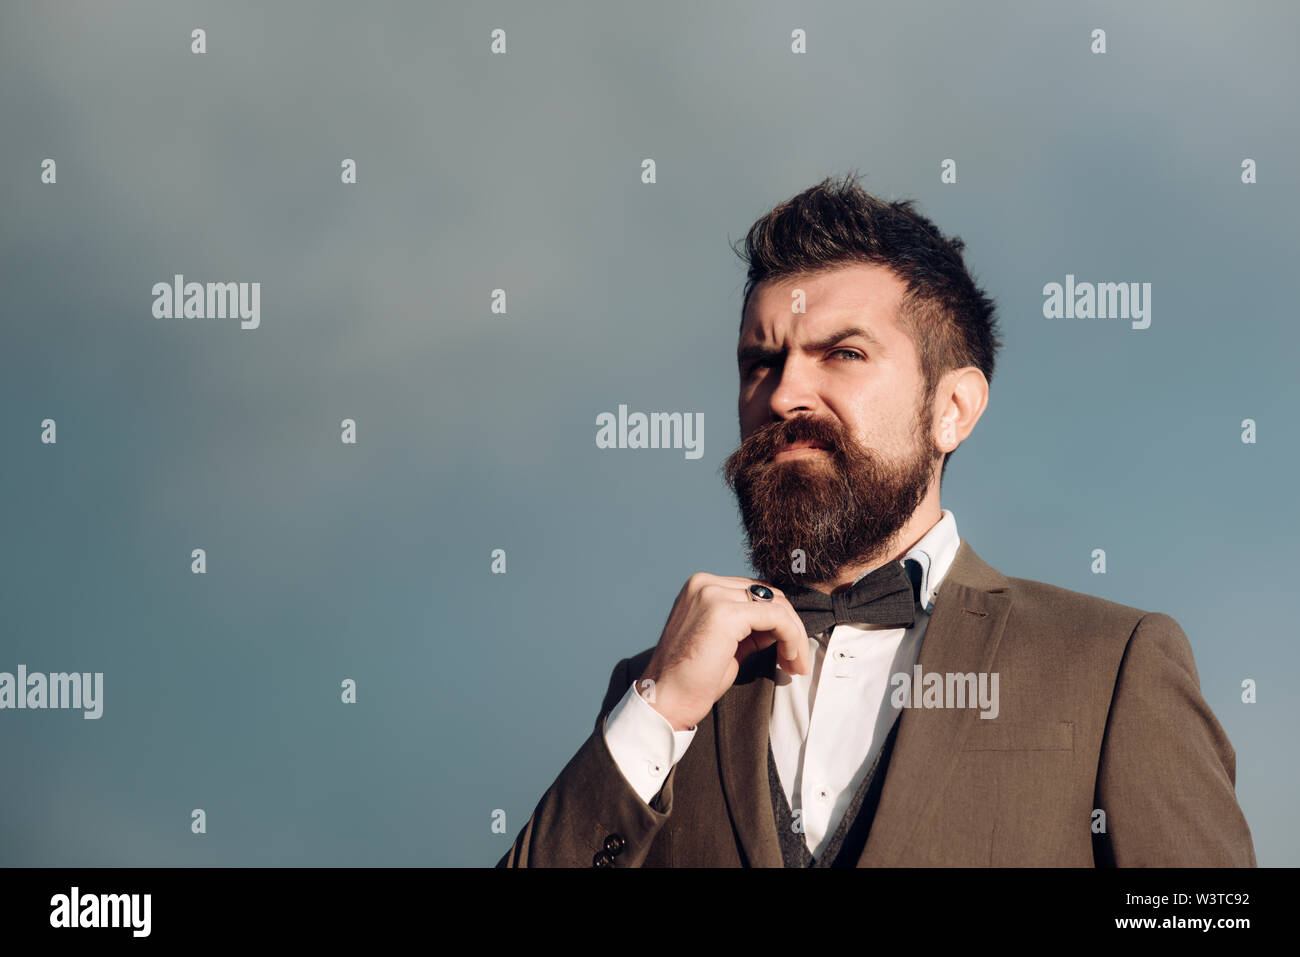 Guy with thoughtful face in classic suit touches bow tie. - Stock Image